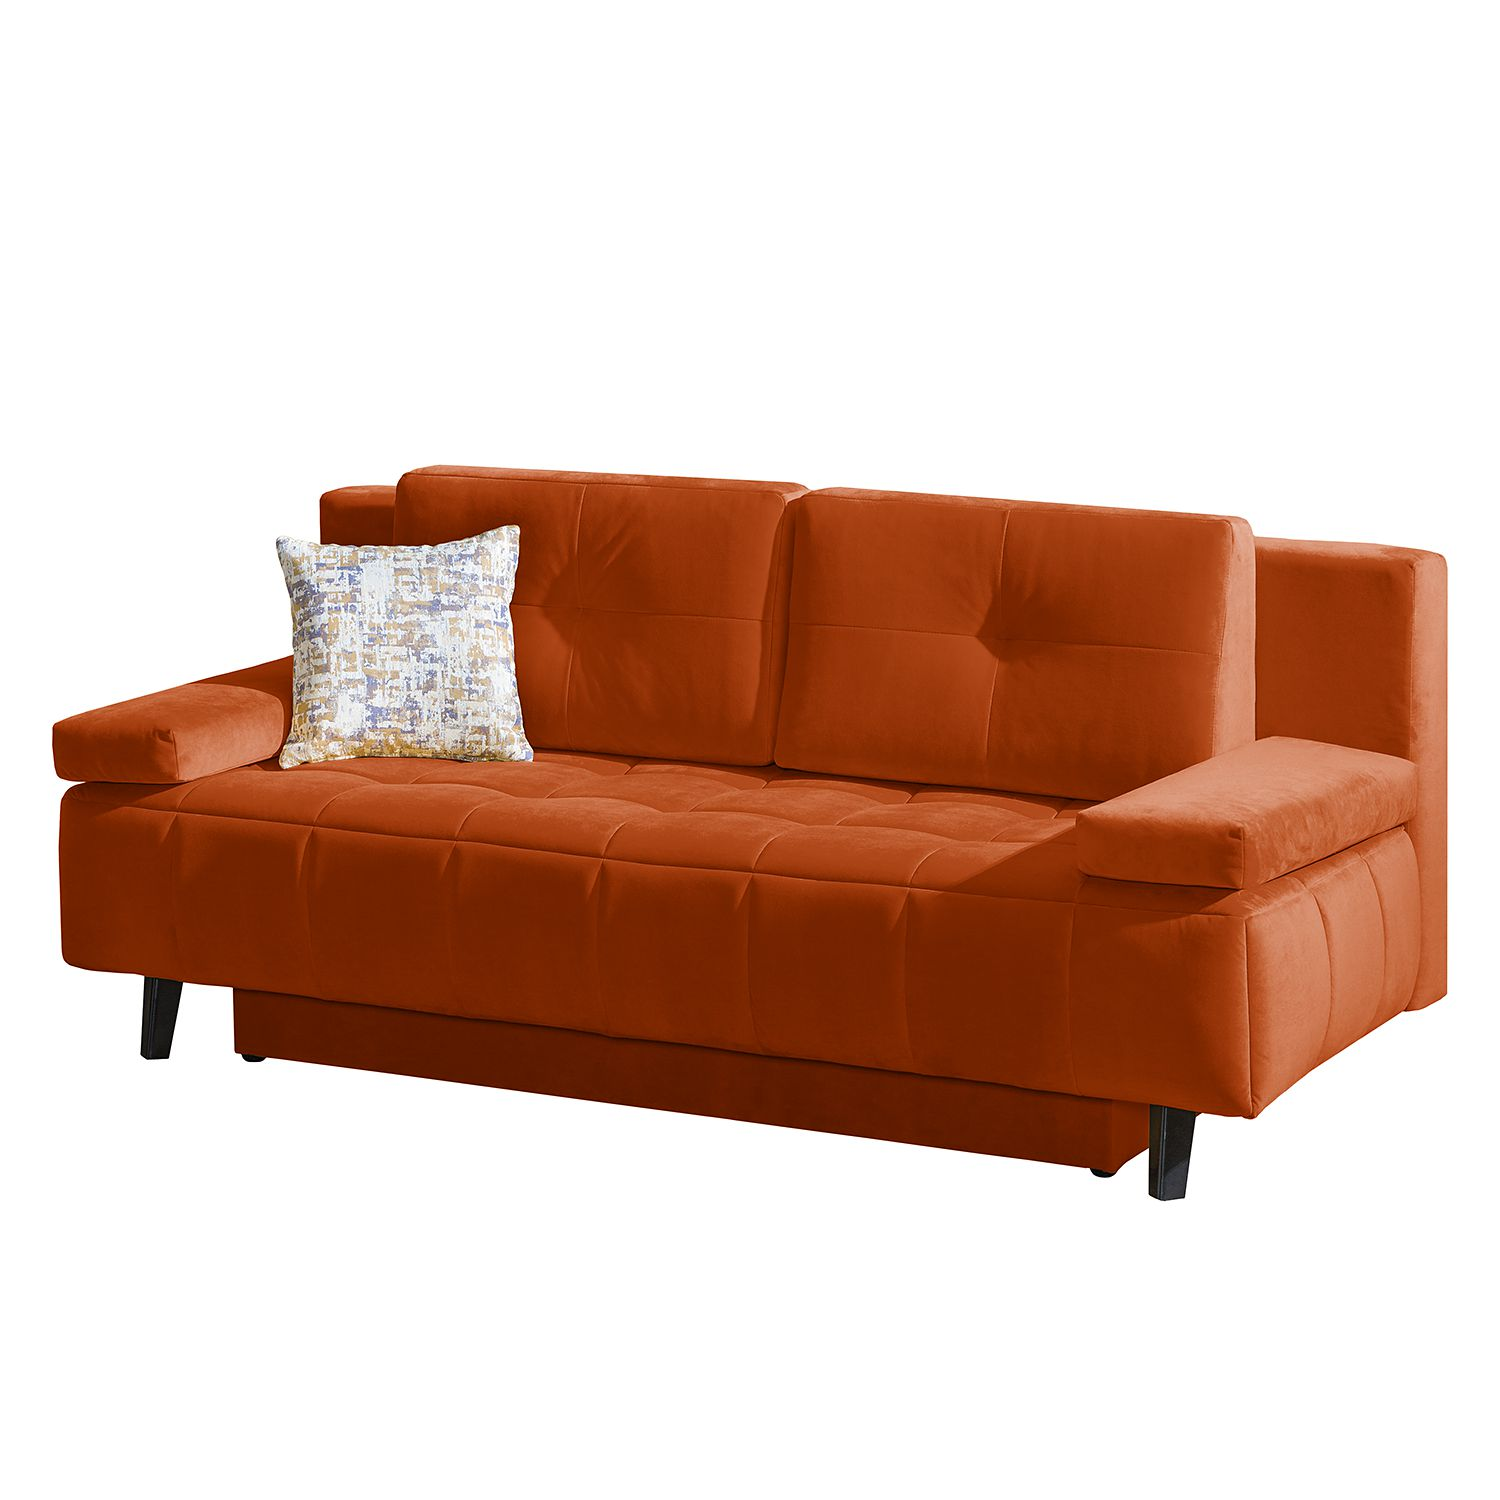 Canapé convertible Loppi - Velours - Orange, Fredriks